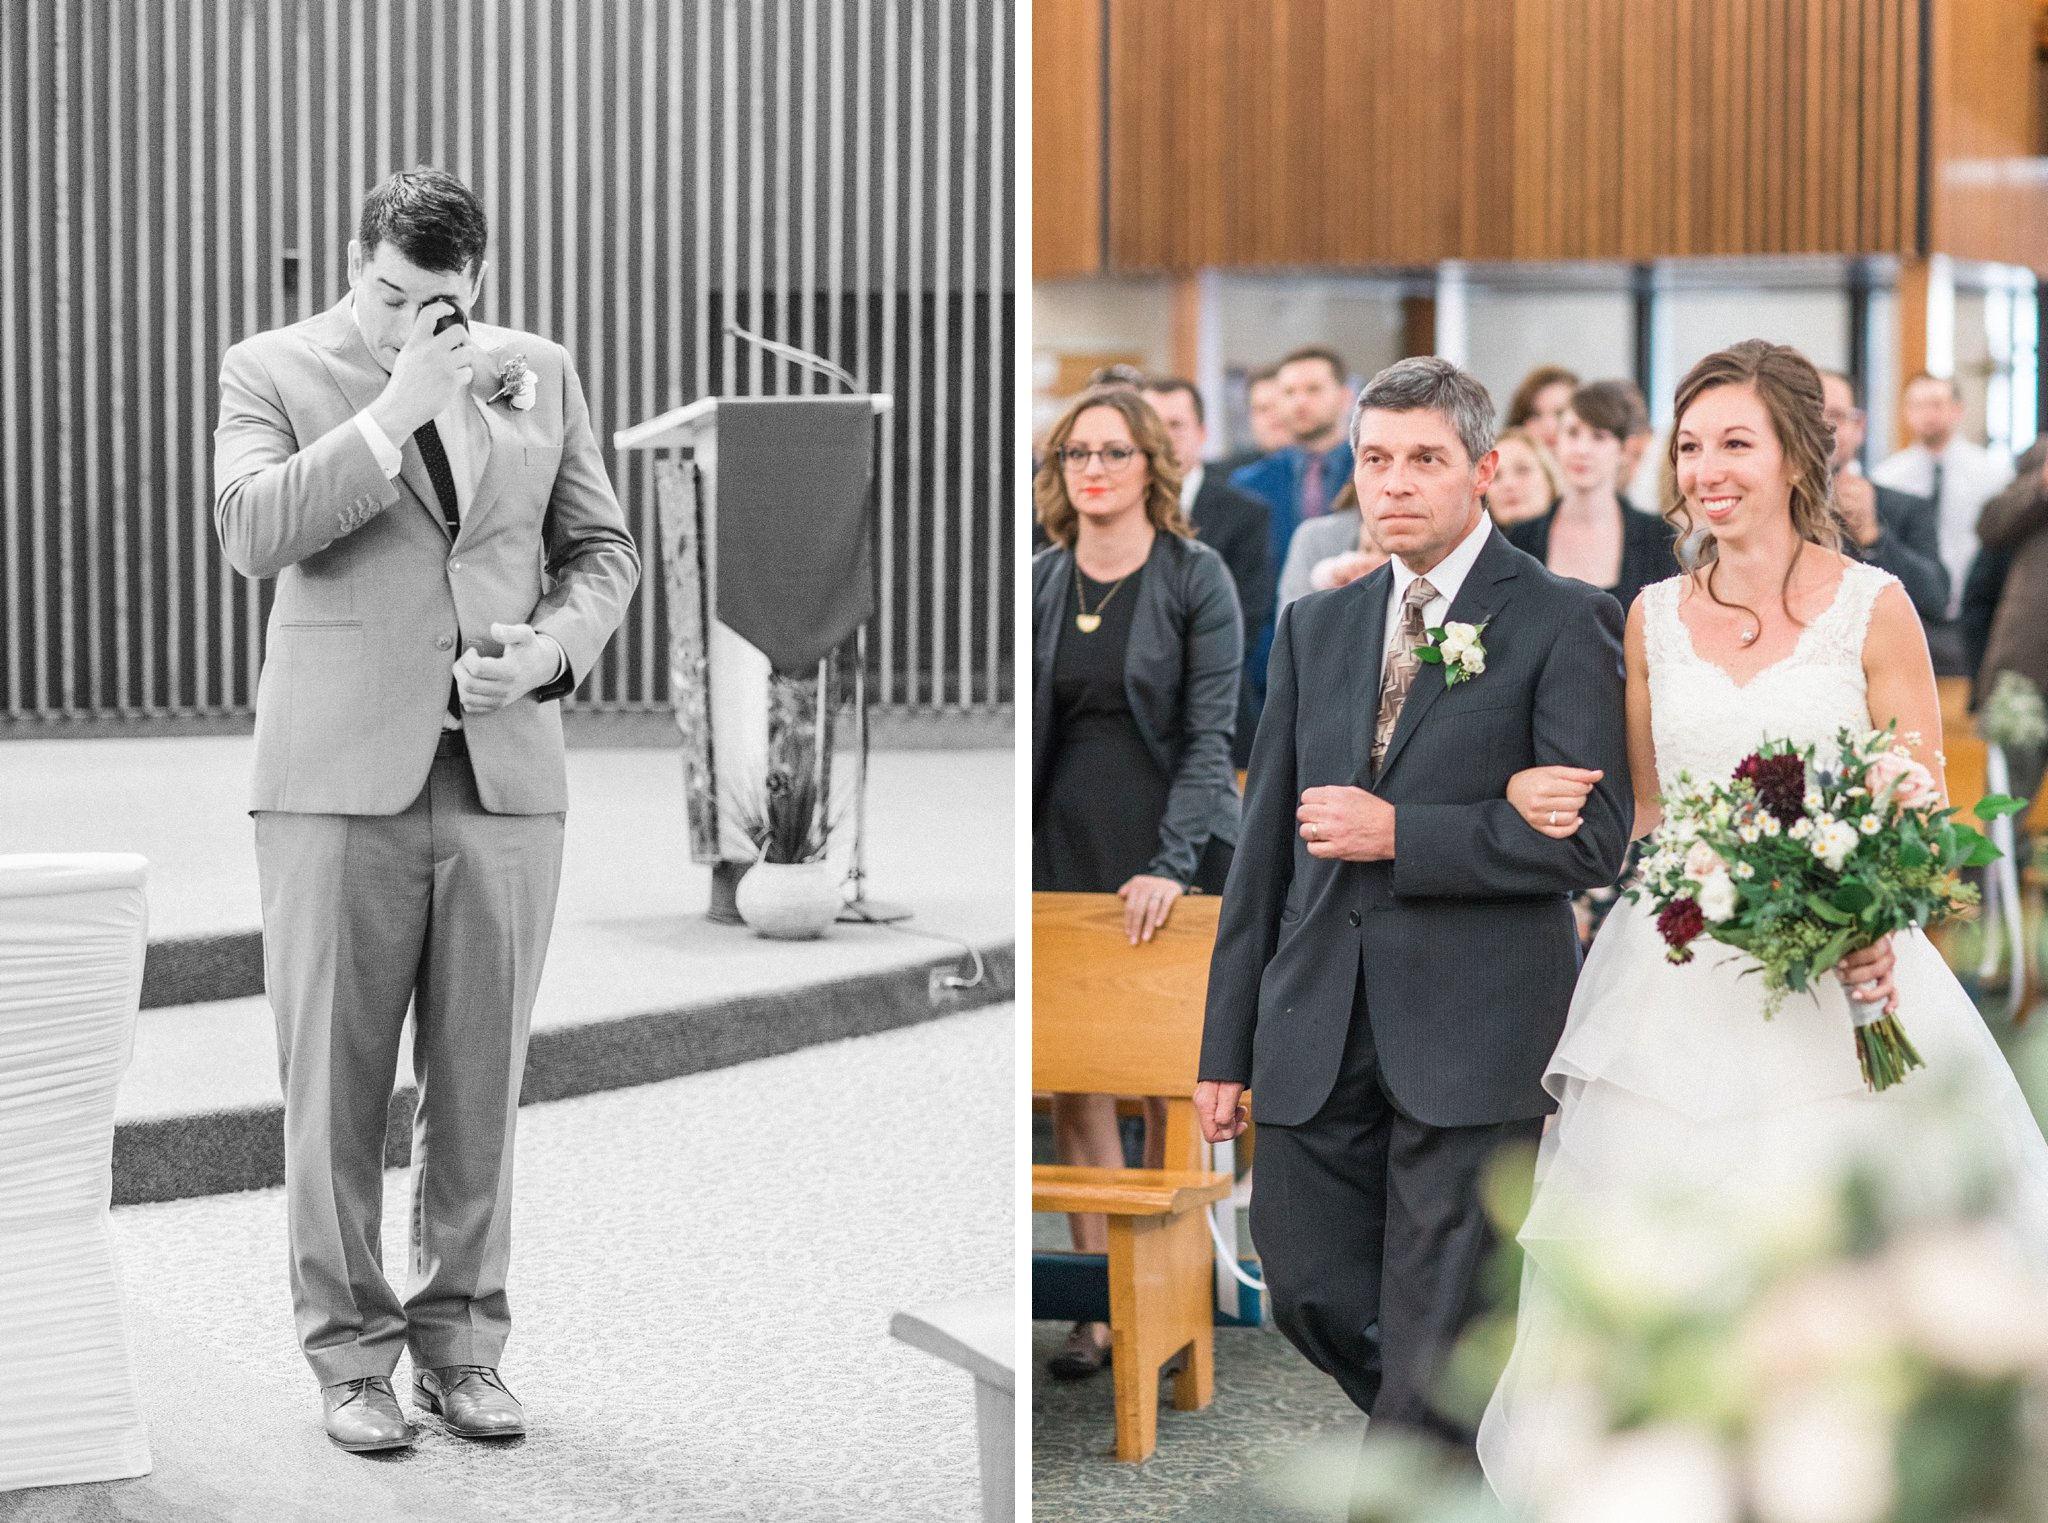 Emotional groom as bride walks down the aisle Hilton Garden Inn Ottawa Airport Hotel Wedding